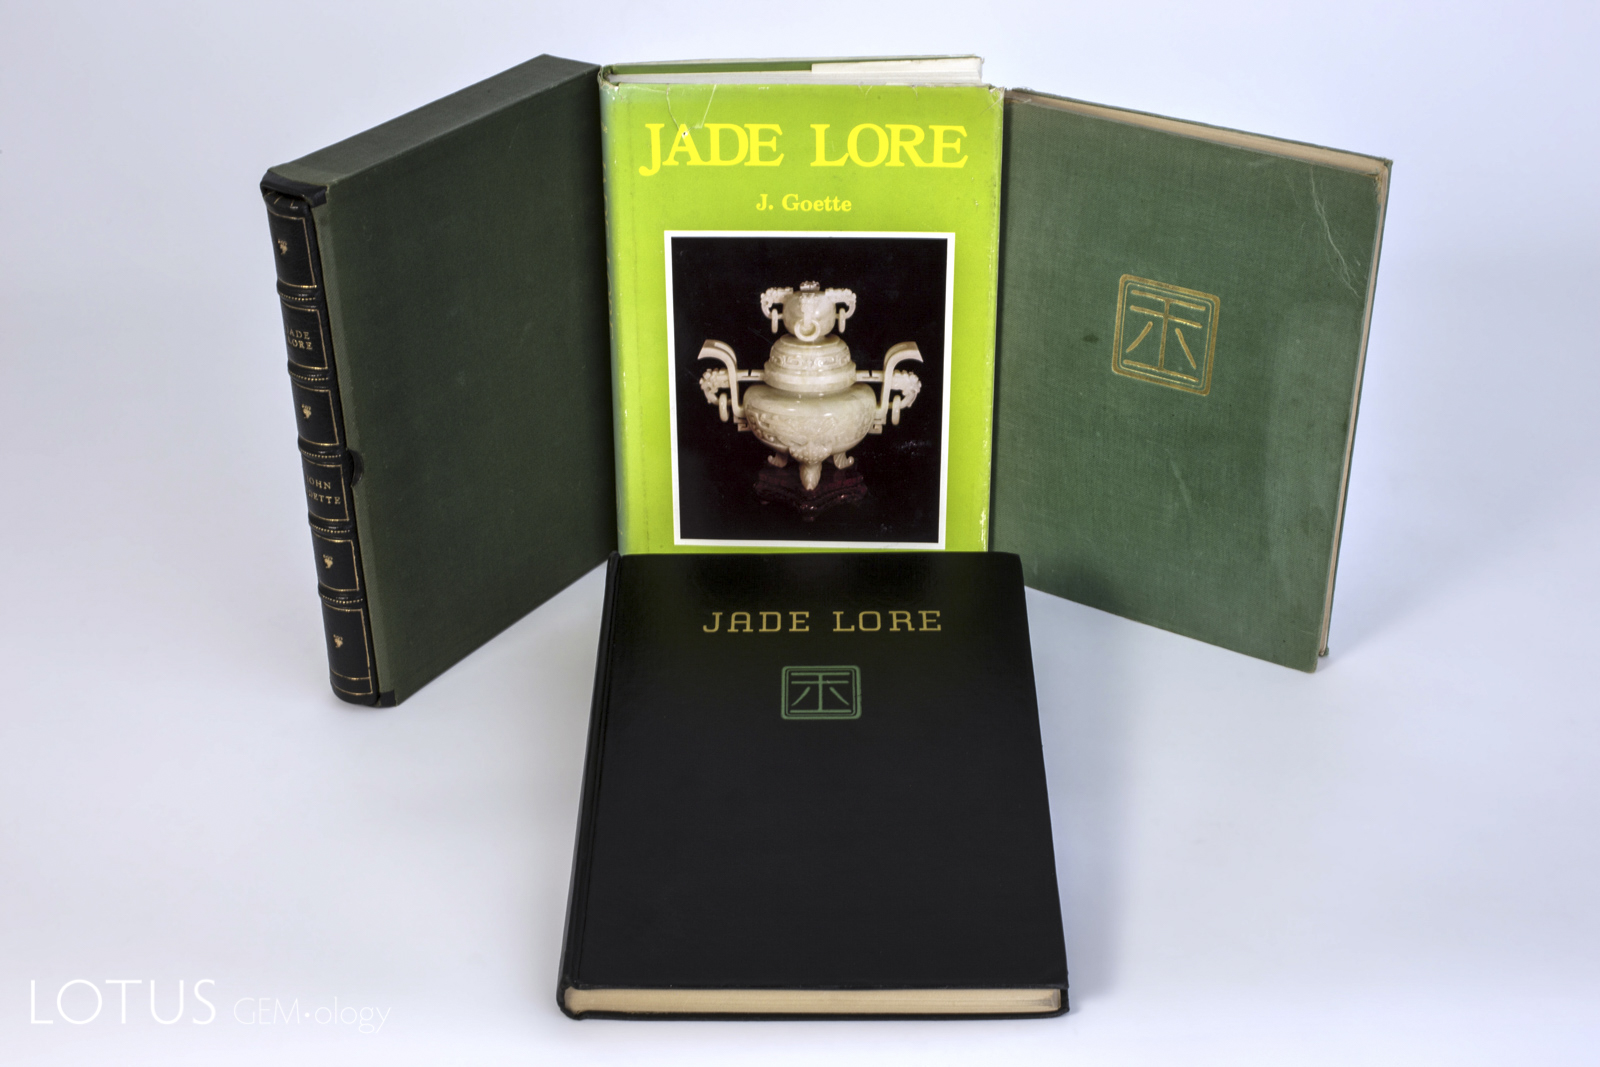 One of the joys of book collecting is collecting different editions and printings. Here we see four versions of John Goette's Jade Lore. Clockwise from top left: custom leather binding of the 1936 Shanghai edition; the 1976 Ars Ceramica edition; the original 1936 edition and the 1937 Reynal & Hitchcock edition. Prior to the appearance of this book in 1936, only nine monographs on jade had been published in Occidental languages.